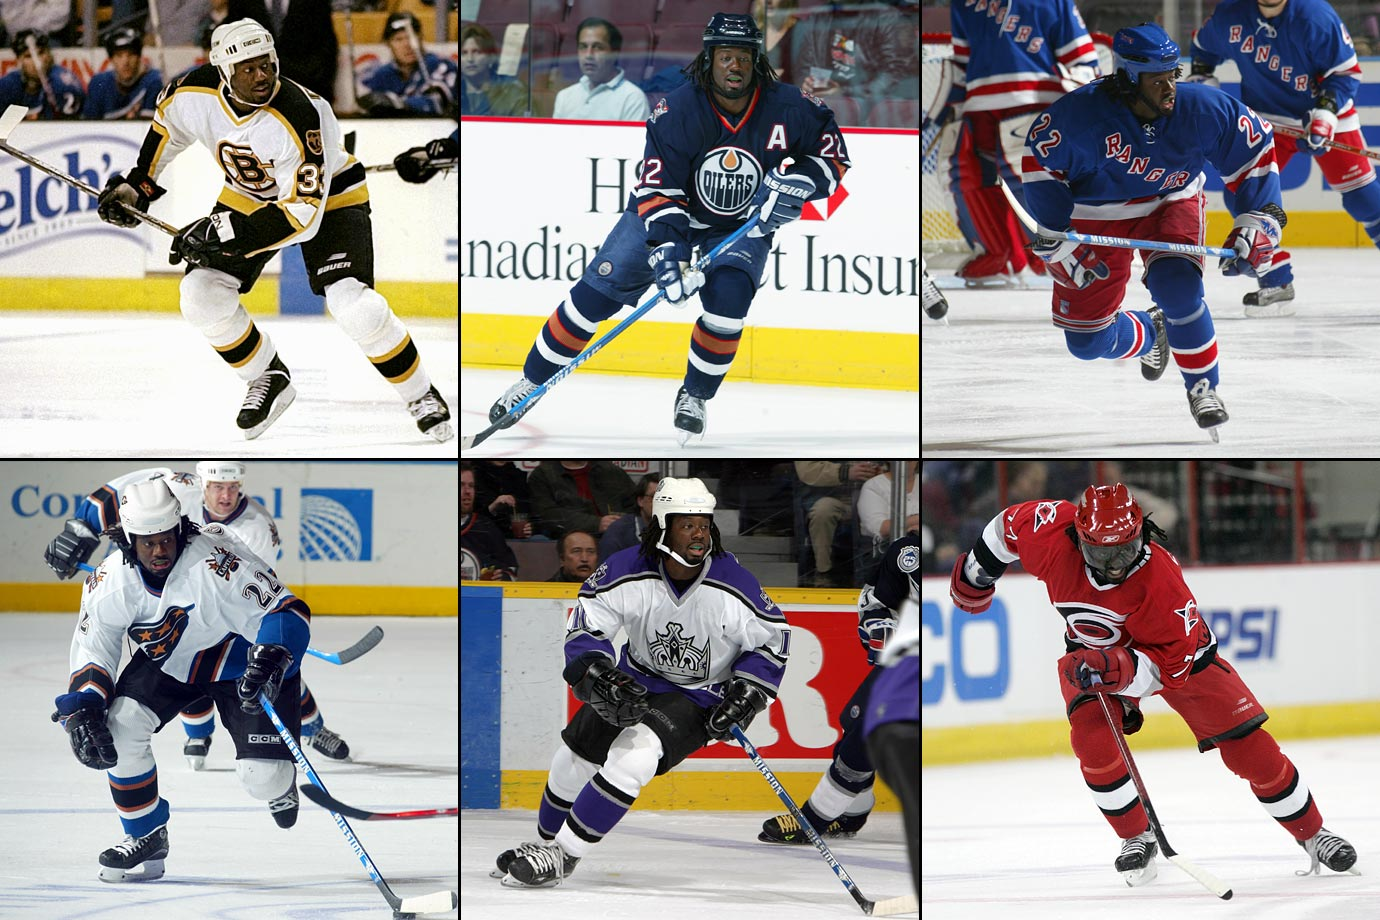 Colorado to Washington (4/3/96), Washington to Boston (3/1/97), Boston to Edmonton (11/15/00), Edmonton to NY Rangers (3/11/03), NY Rangers to Washington (1/23/04), Washington to Los Angeles (3/8/04), Columbus to Carolina (2/23/07)